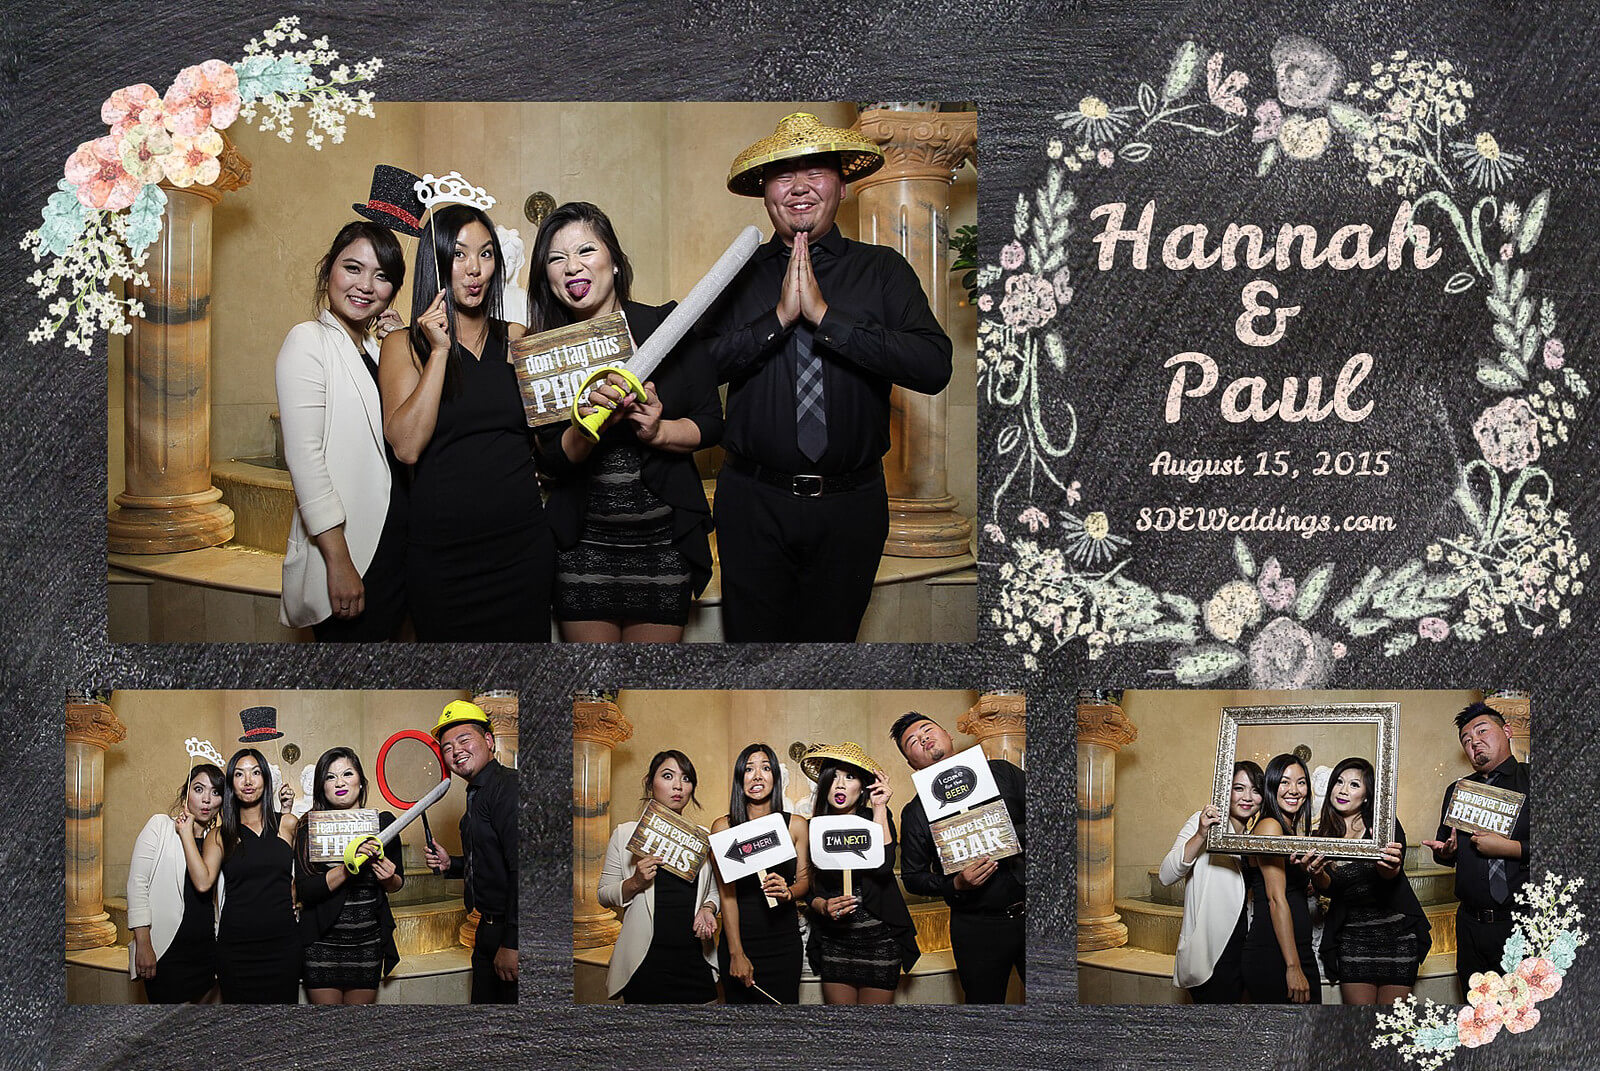 Markham Premiere Banquet Wedding Photobooth Rental 4